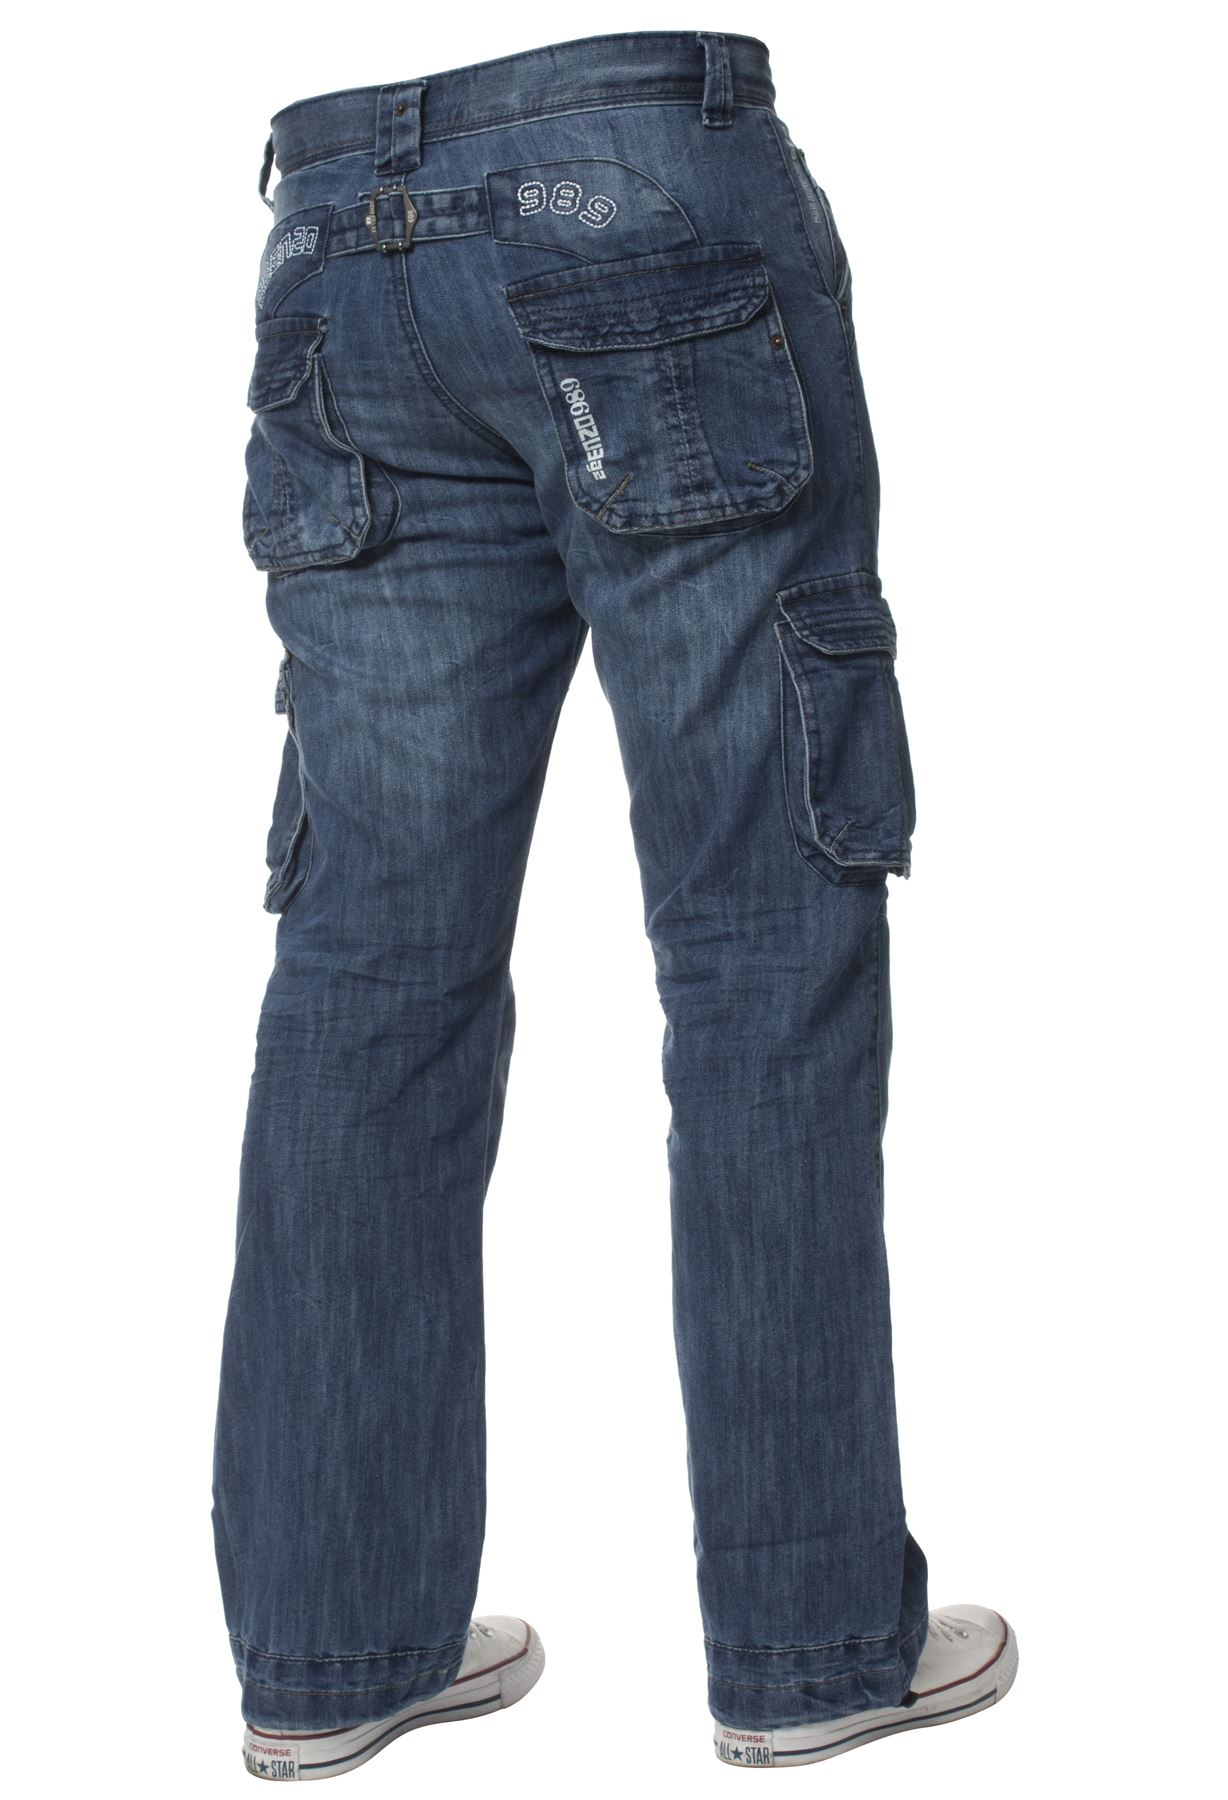 Enzo-Mens-Cargo-Combat-Trousers-Jeans-Work-Casual-Denim-Pants-Big-Tall-All-Waist thumbnail 9